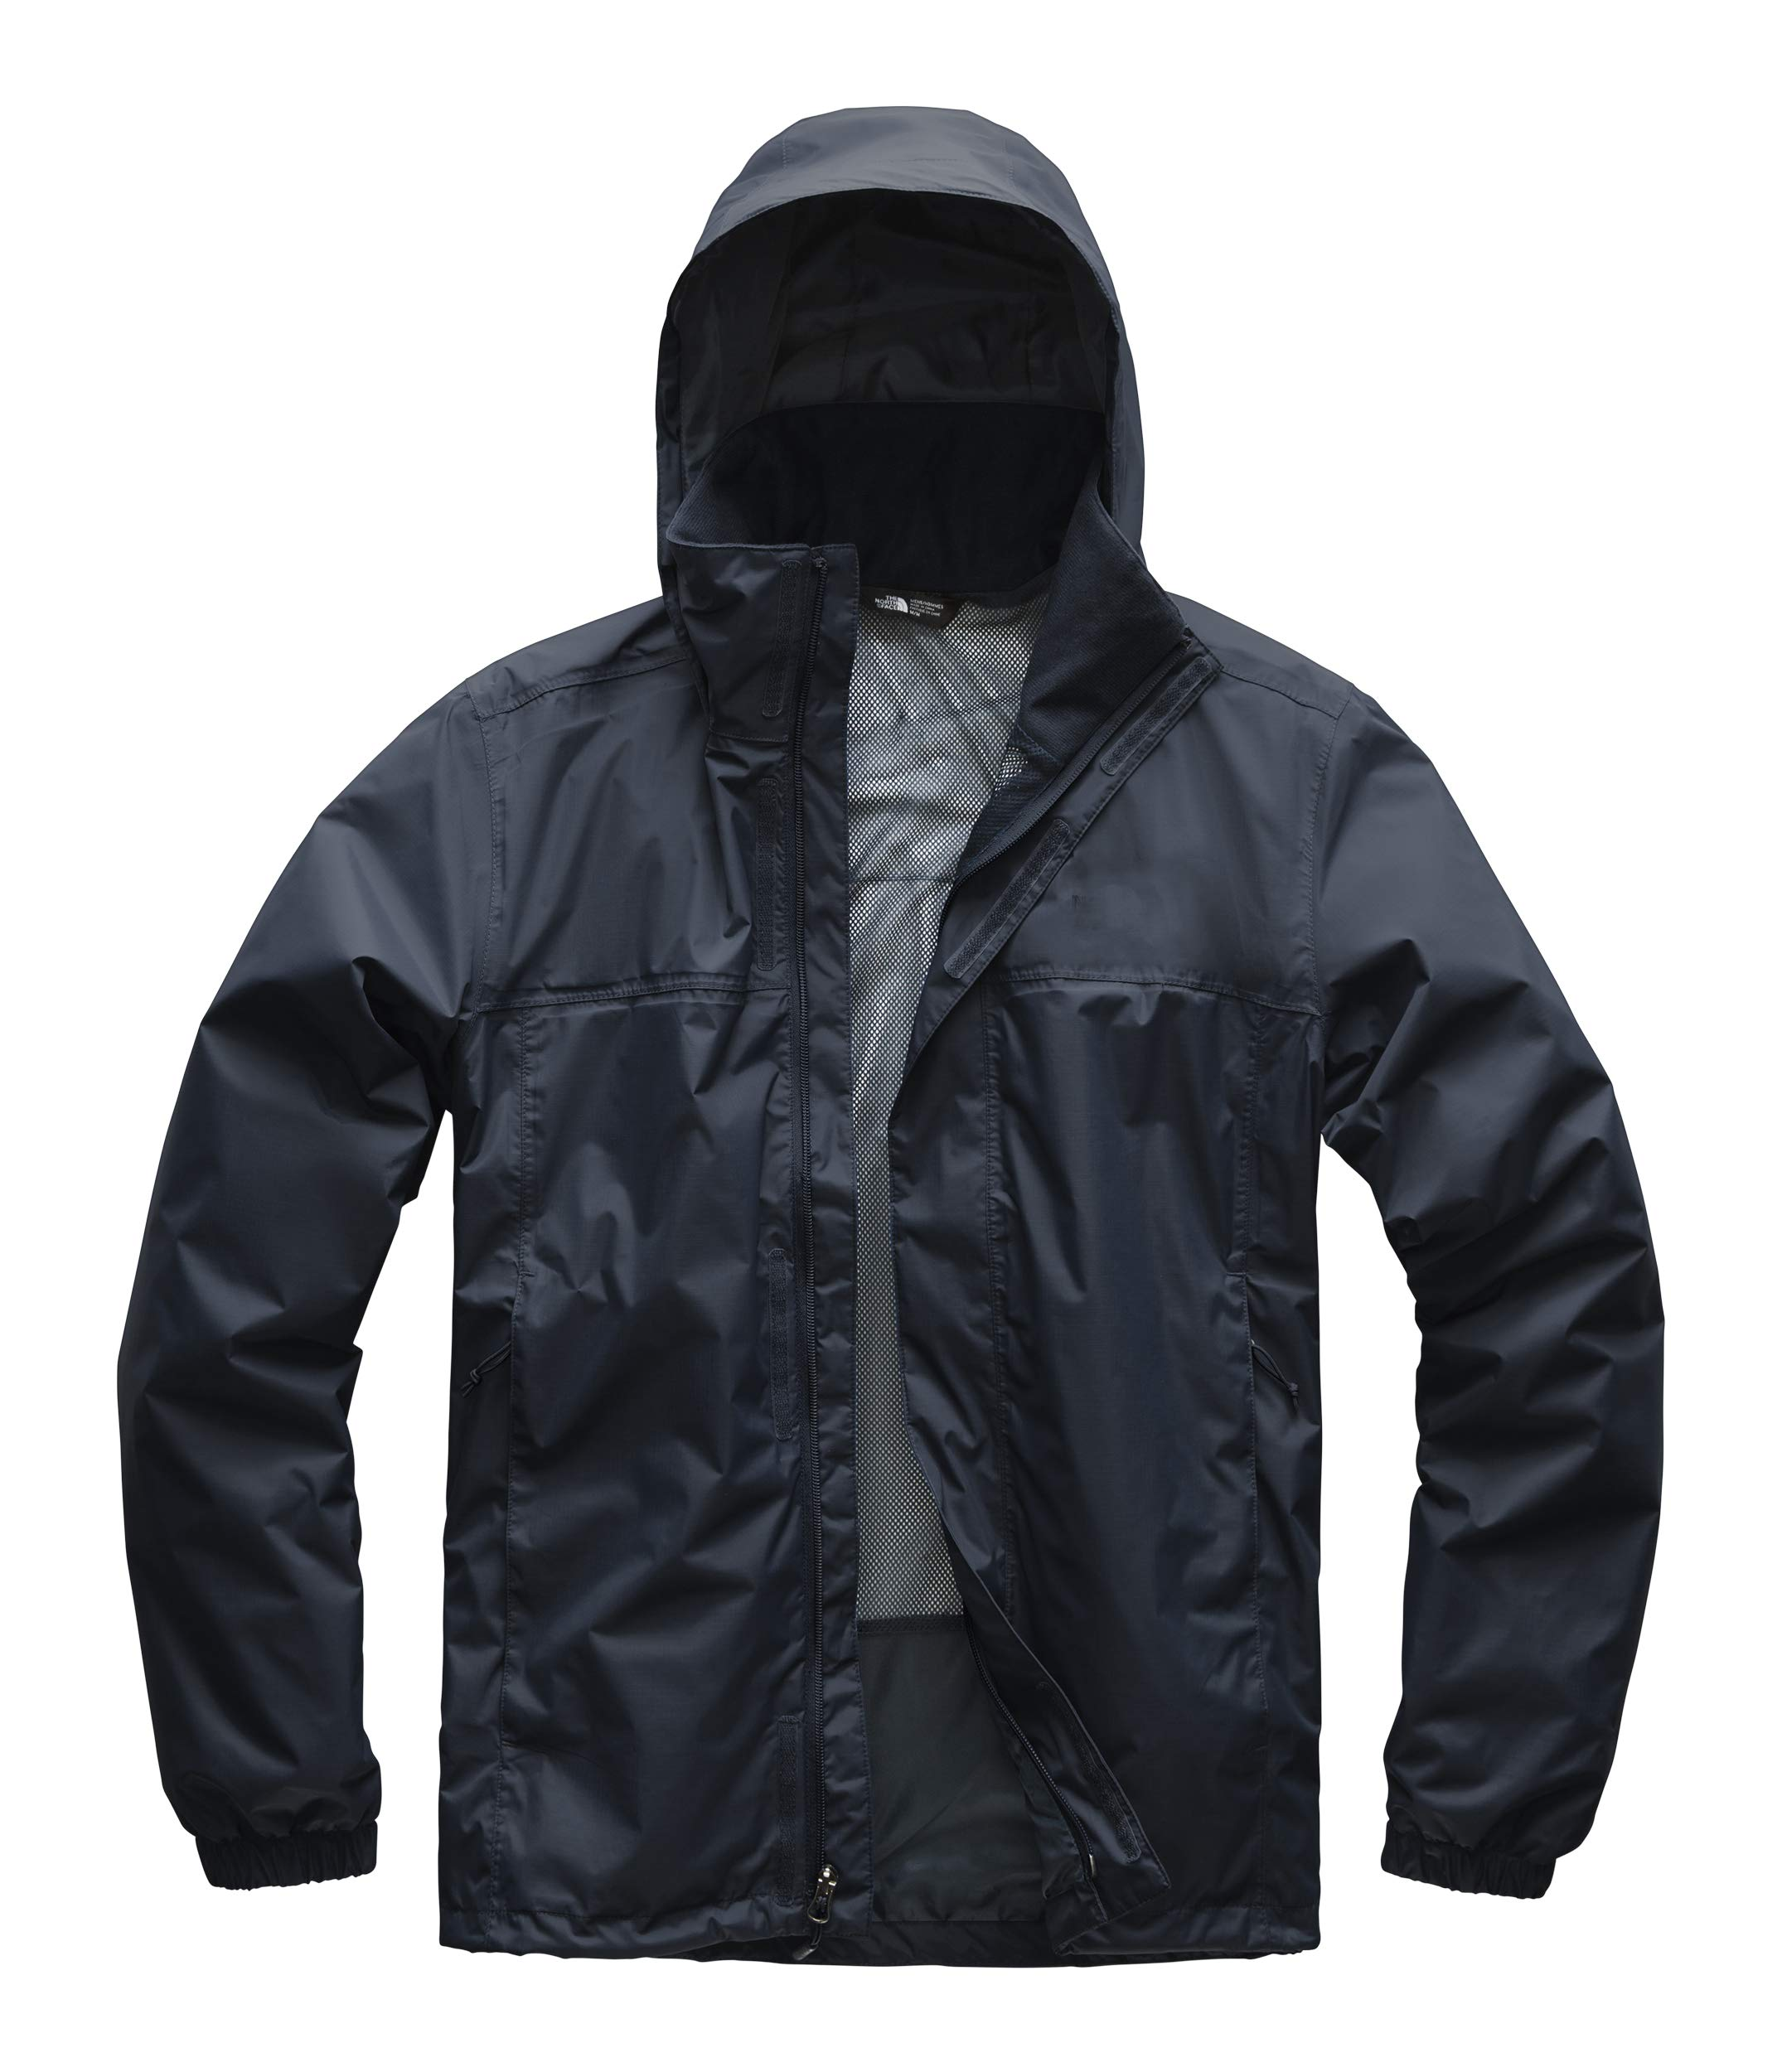 The North Face Men's Resolve Jacket, Urban Navy/Mid Grey, Large by The North Face